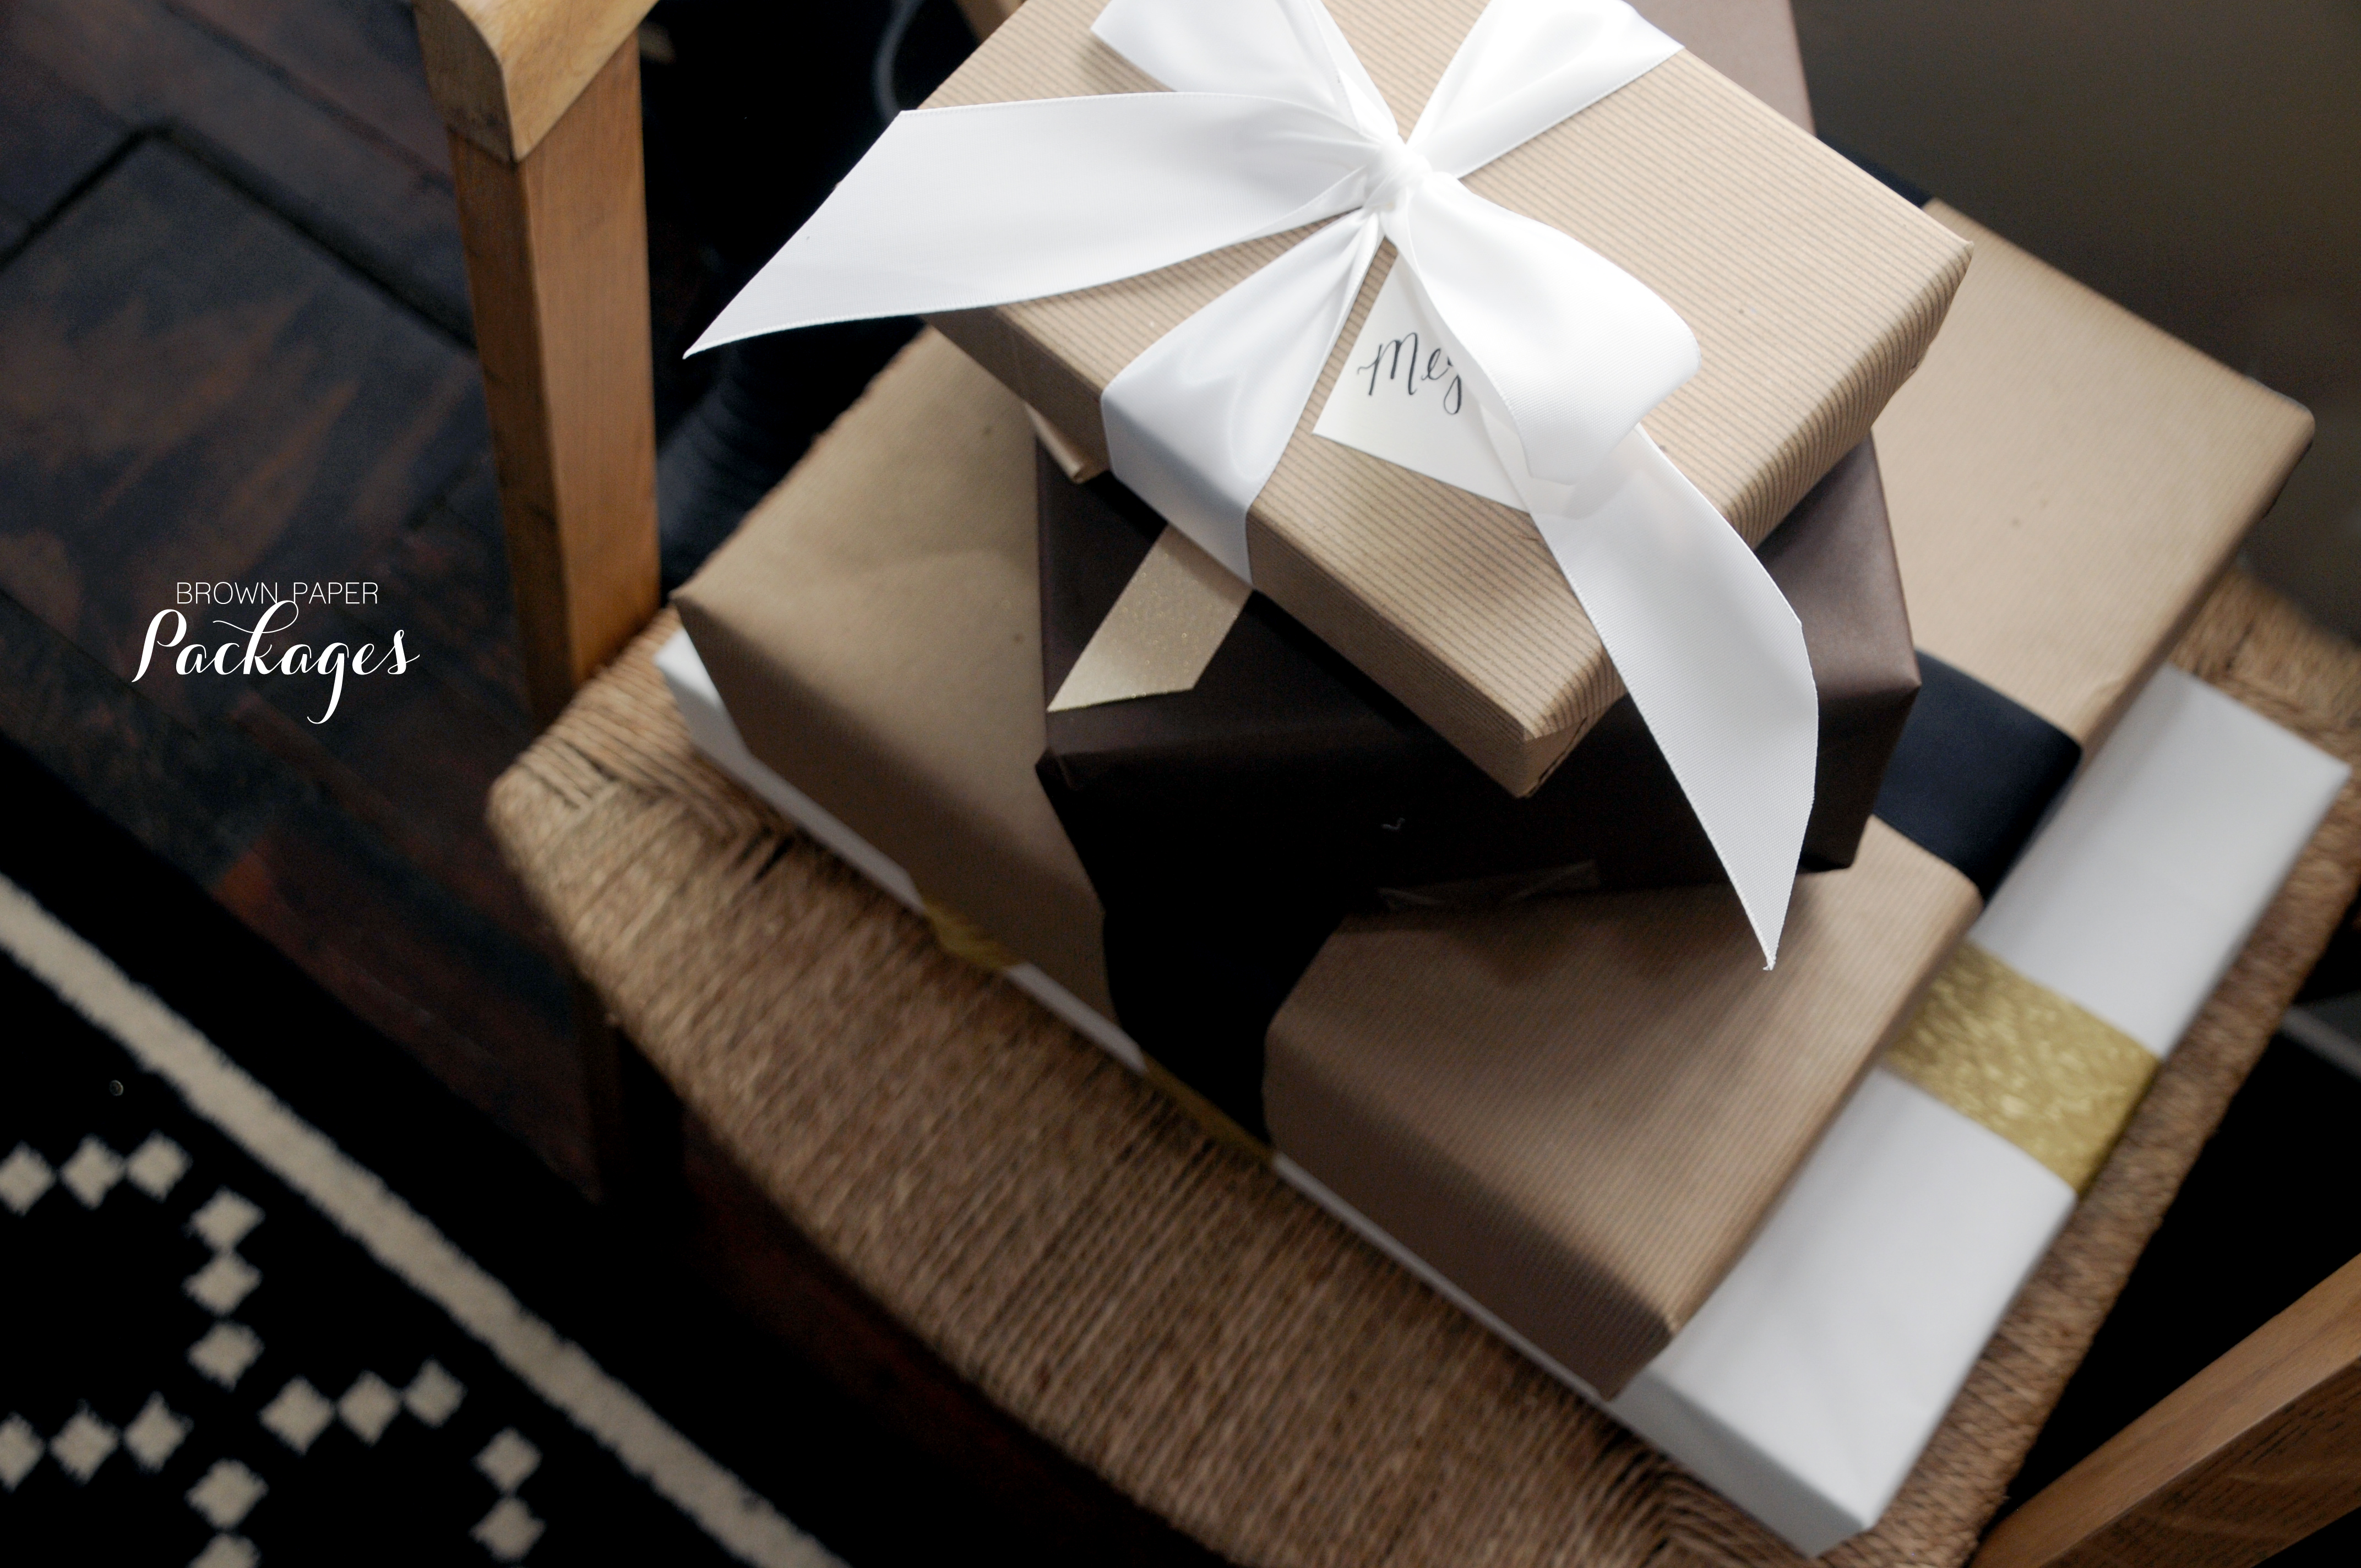 Unique Brown Paper Packages - Earnest Home co. WP08